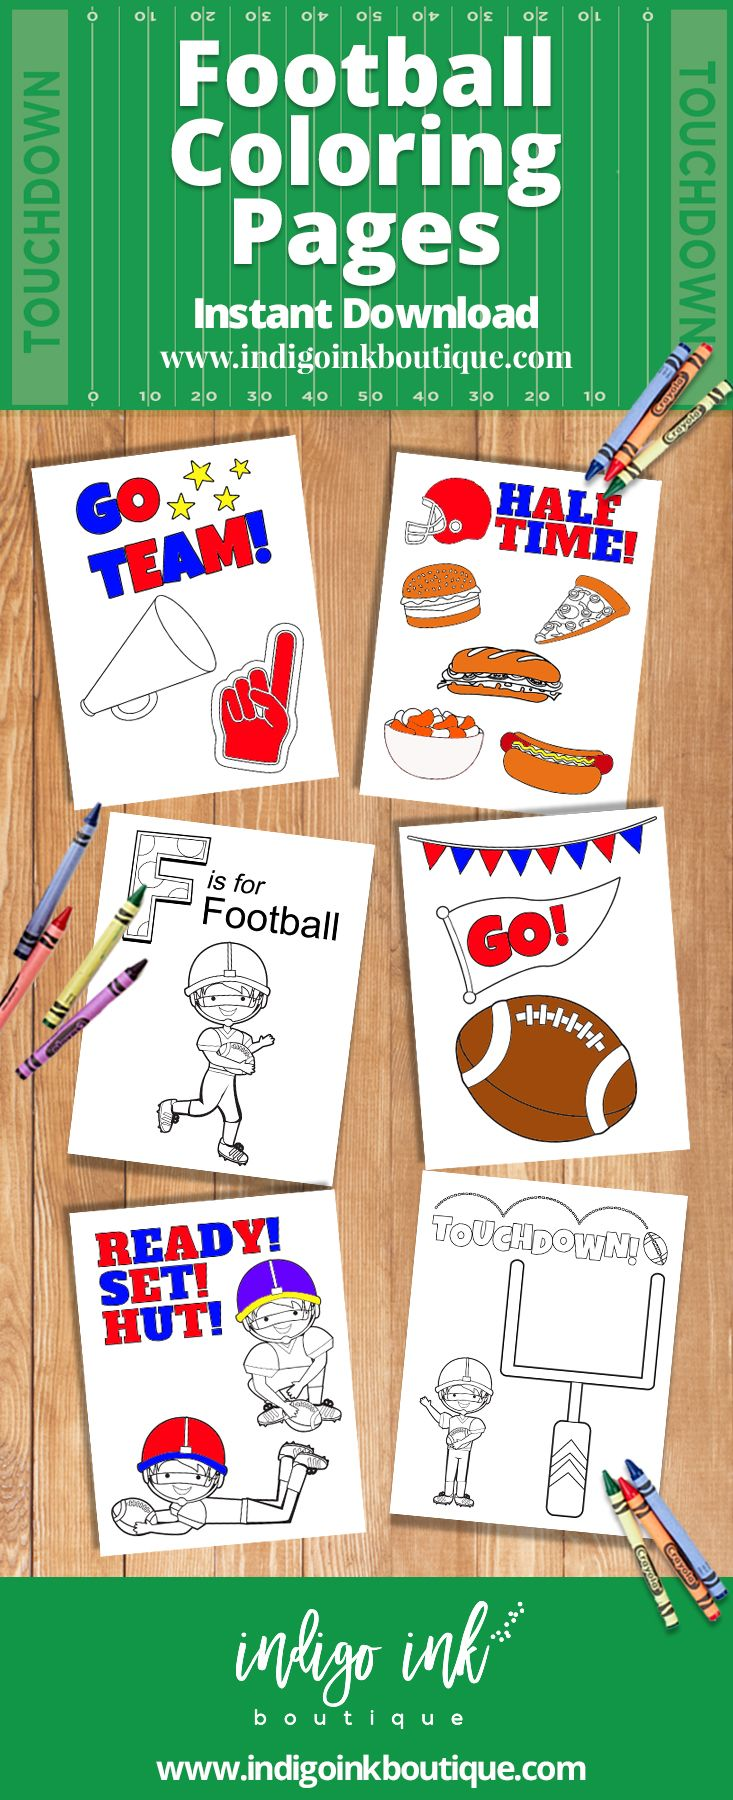 Gear up for game day with these football coloring pages from Indigo Ink Boutique. This football printable is an INSTANT DOWNLOAD so kids can enjoy lots of coloring fun instantly! Great for Superbowl, half time or tailgating with the kids! You will receive one PDF with 6 coloring sheets. Purchase these football coloring sheets for kids today!